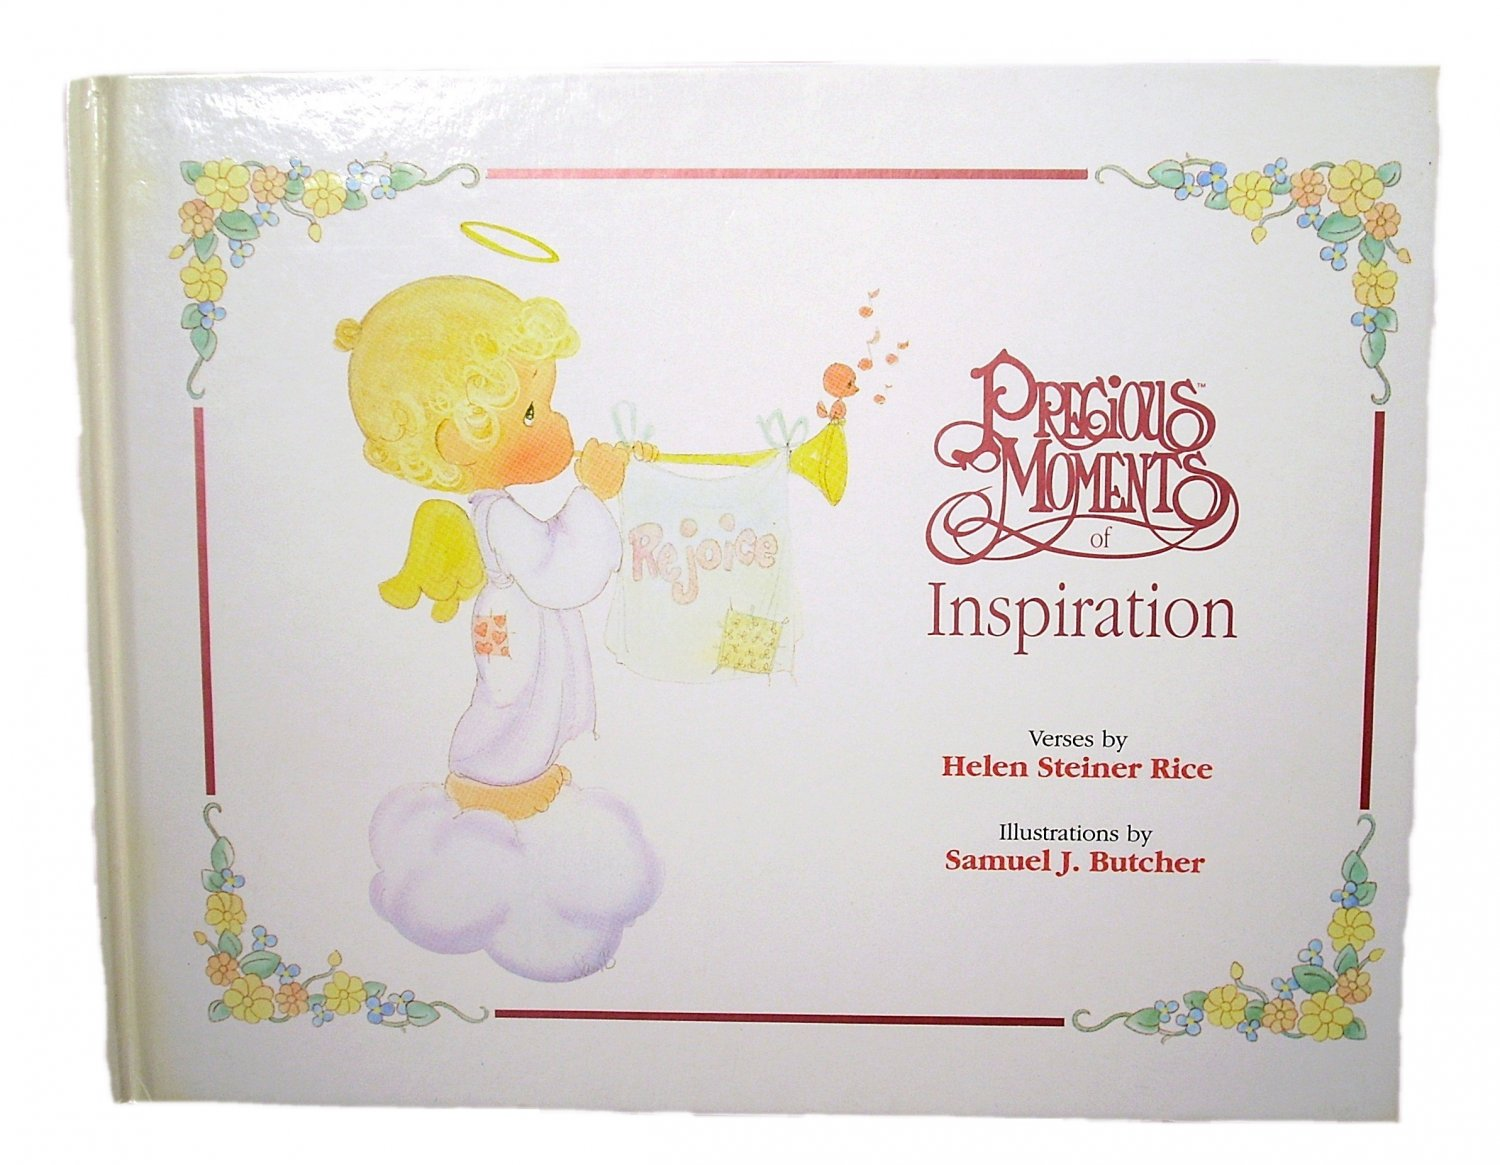 Precious Moments of Inspiration by Helen Steiner Rice Hardcover 1993